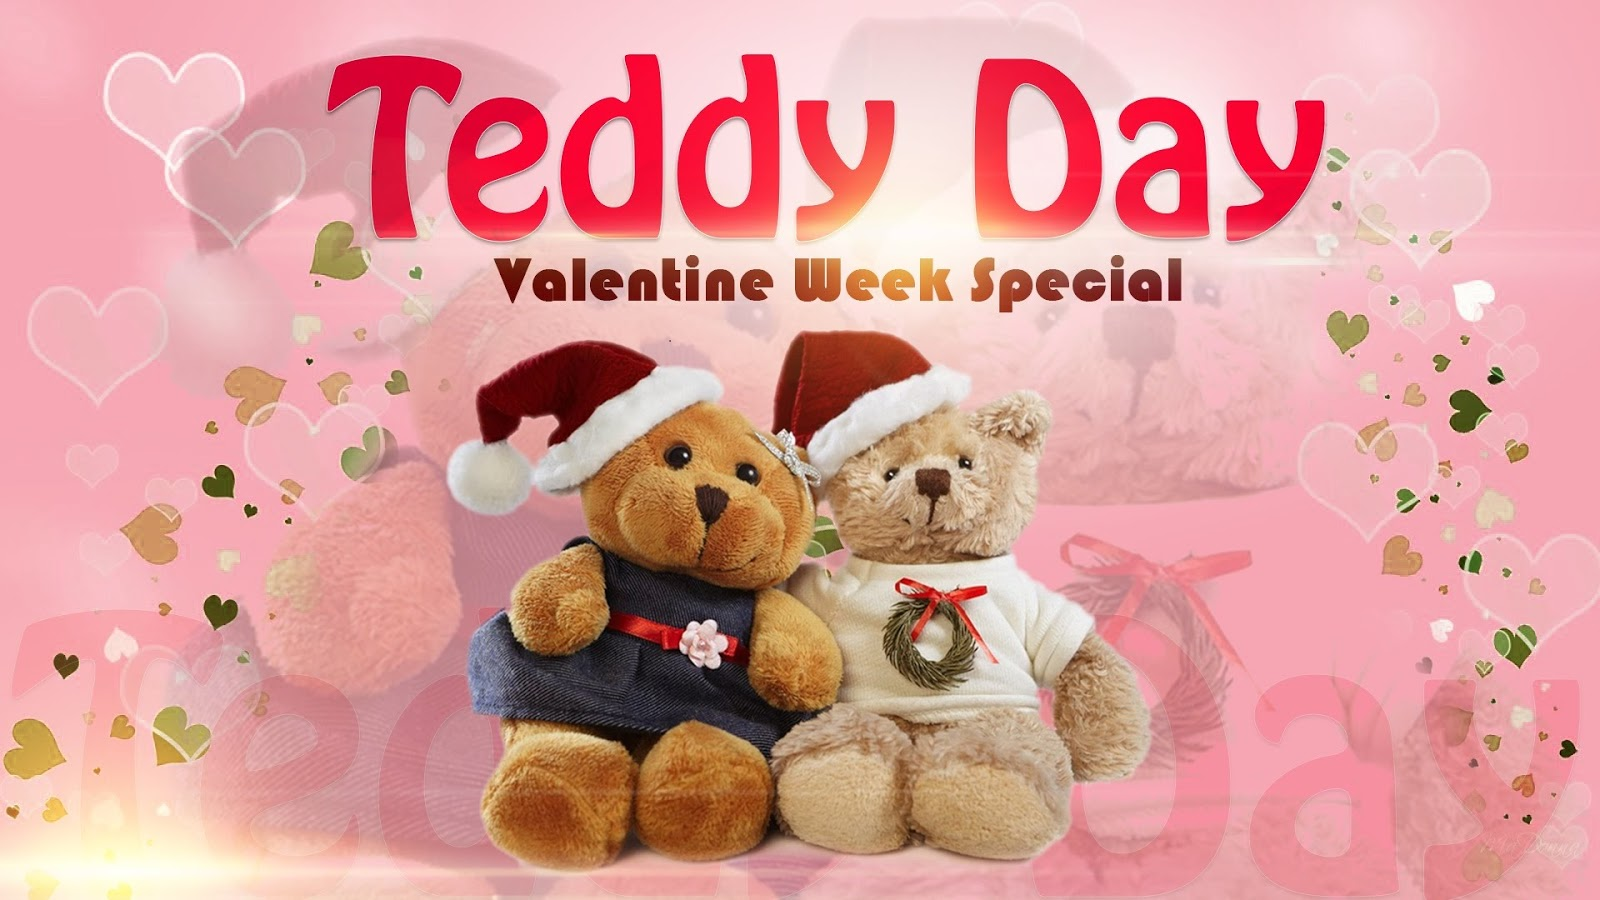 10 february 2018 teddy day history 2018 wishes pics images teddy day cards m4hsunfo